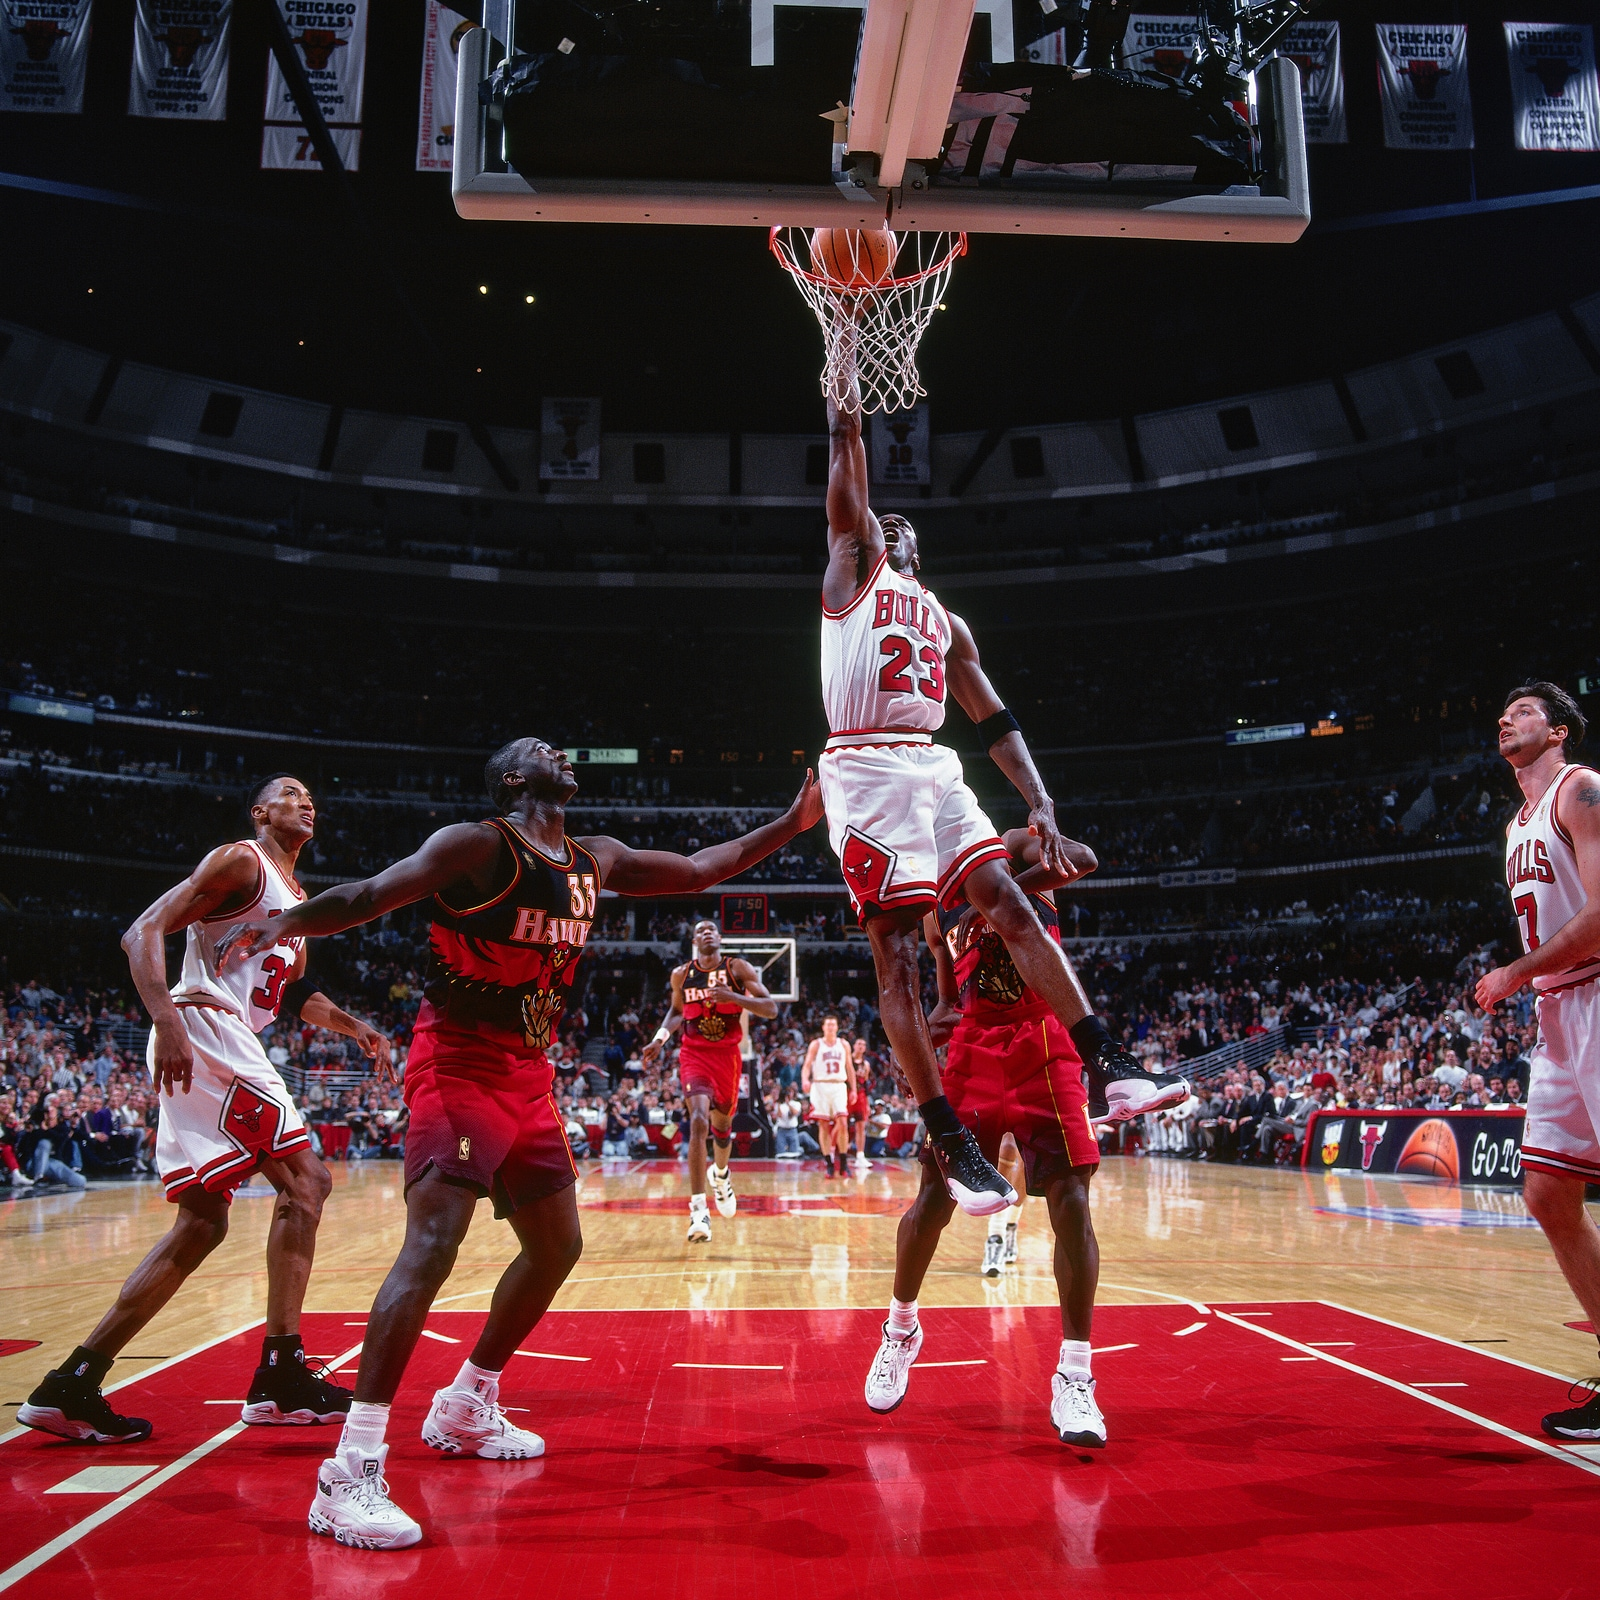 Michael Jordan #23 of the Chicago Bulls shoots the ball during the game against the Atlanta Hawks on May 6, 1997 at the United Center in Chicago, IL.